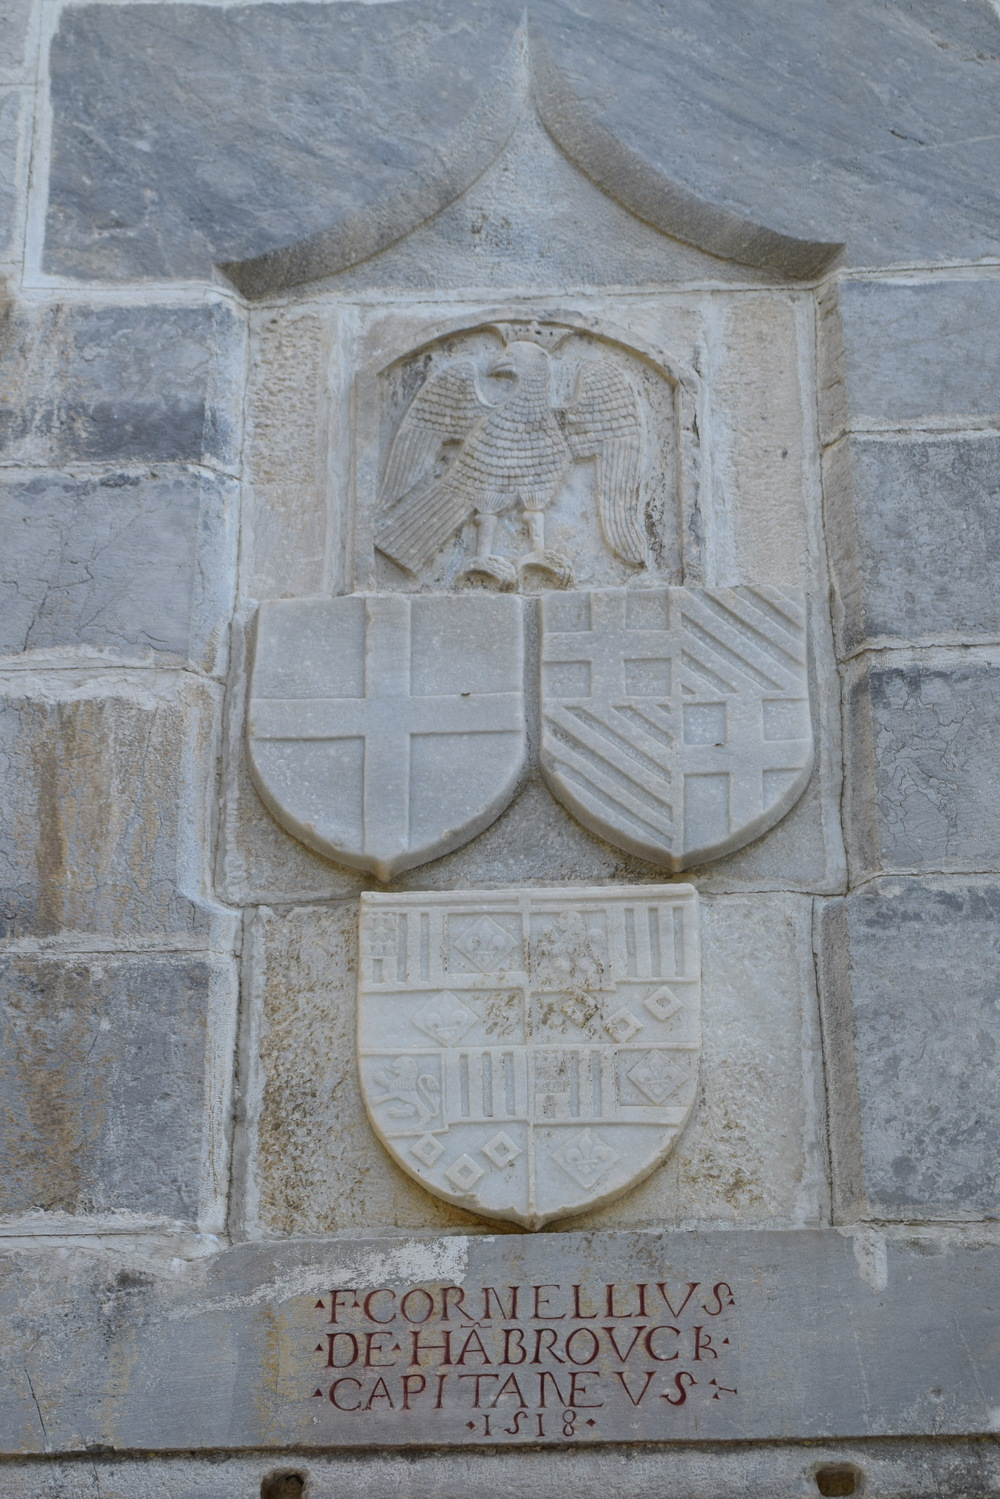 Crests relating to the Knights